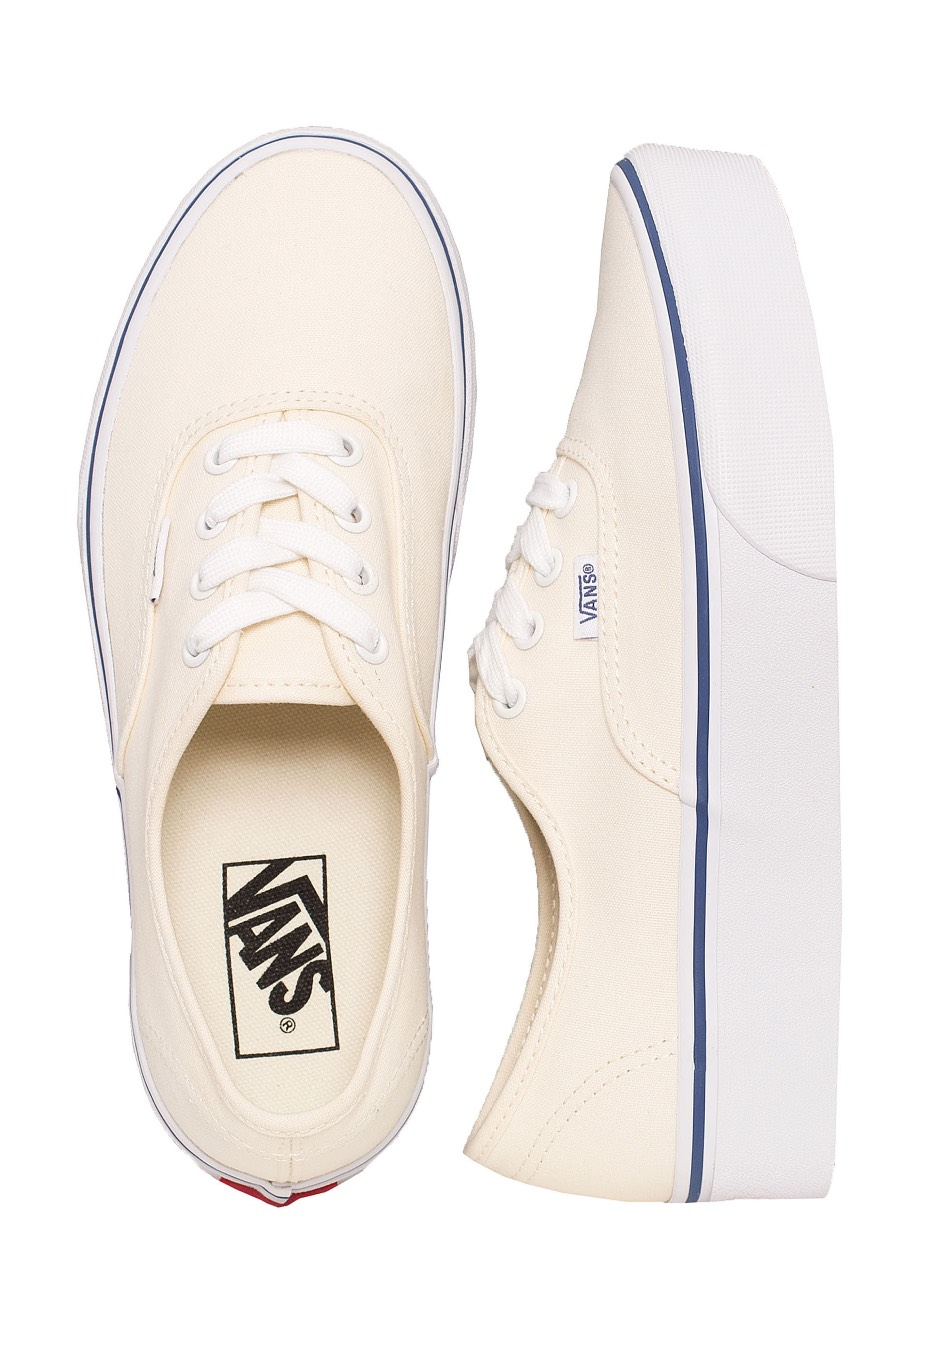 b3ada96a8c Vans - Authentic Platform 2.0 Canvas Classic White True White - Girl Shoes  - Impericon.com Worldwide